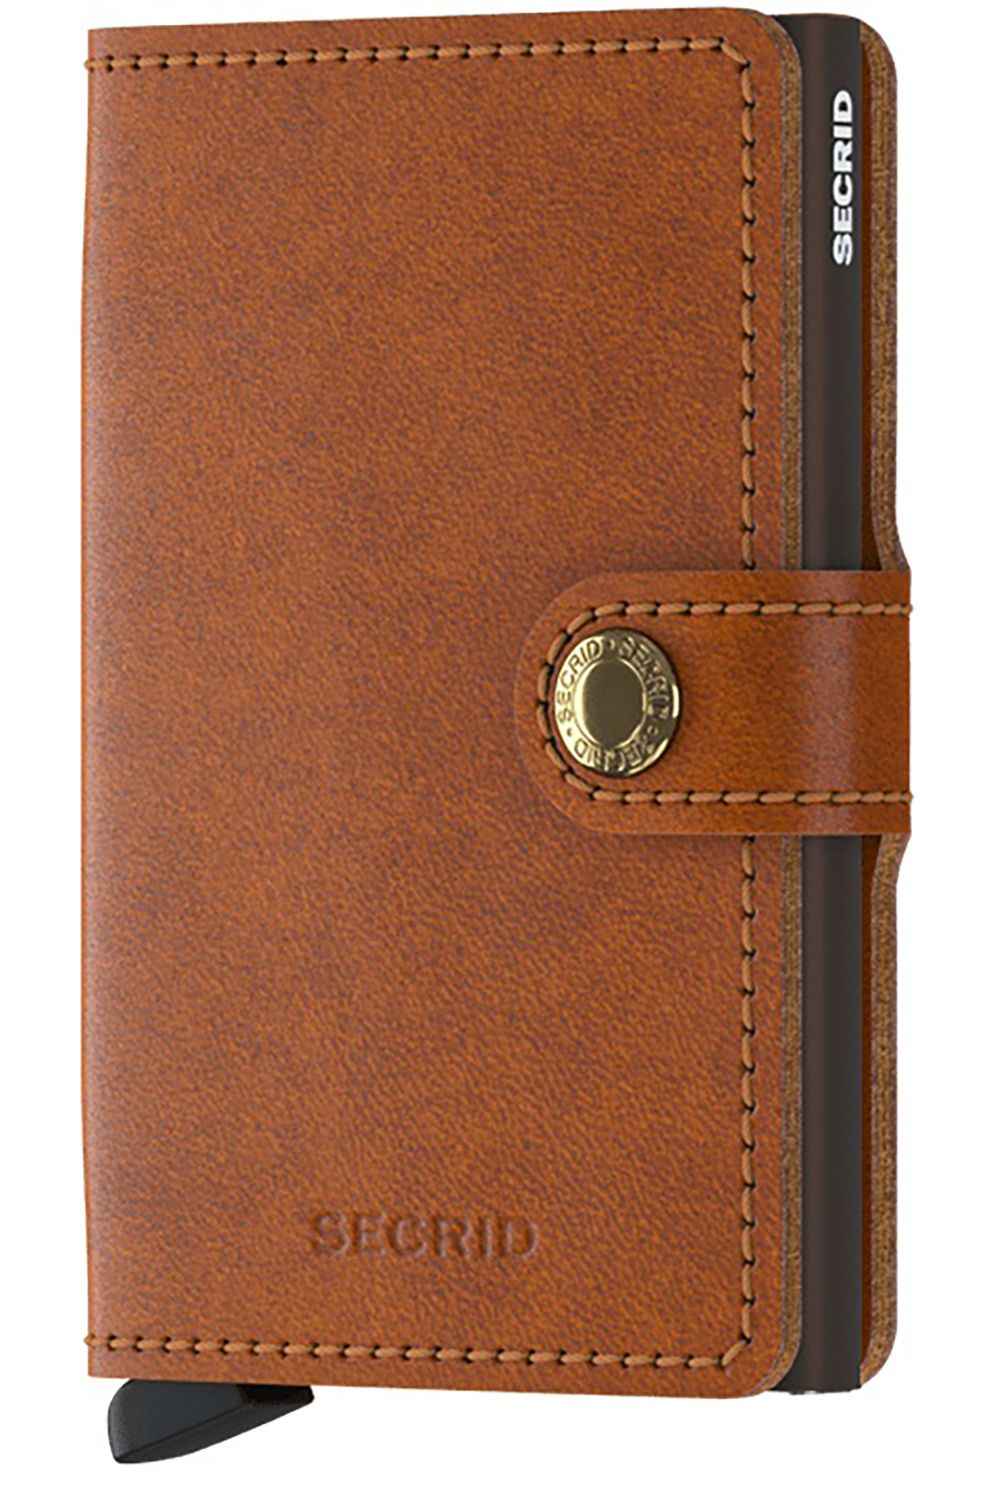 Carteira Pele Secrid MINIWALLET ORIGINAL Cognac/Brown